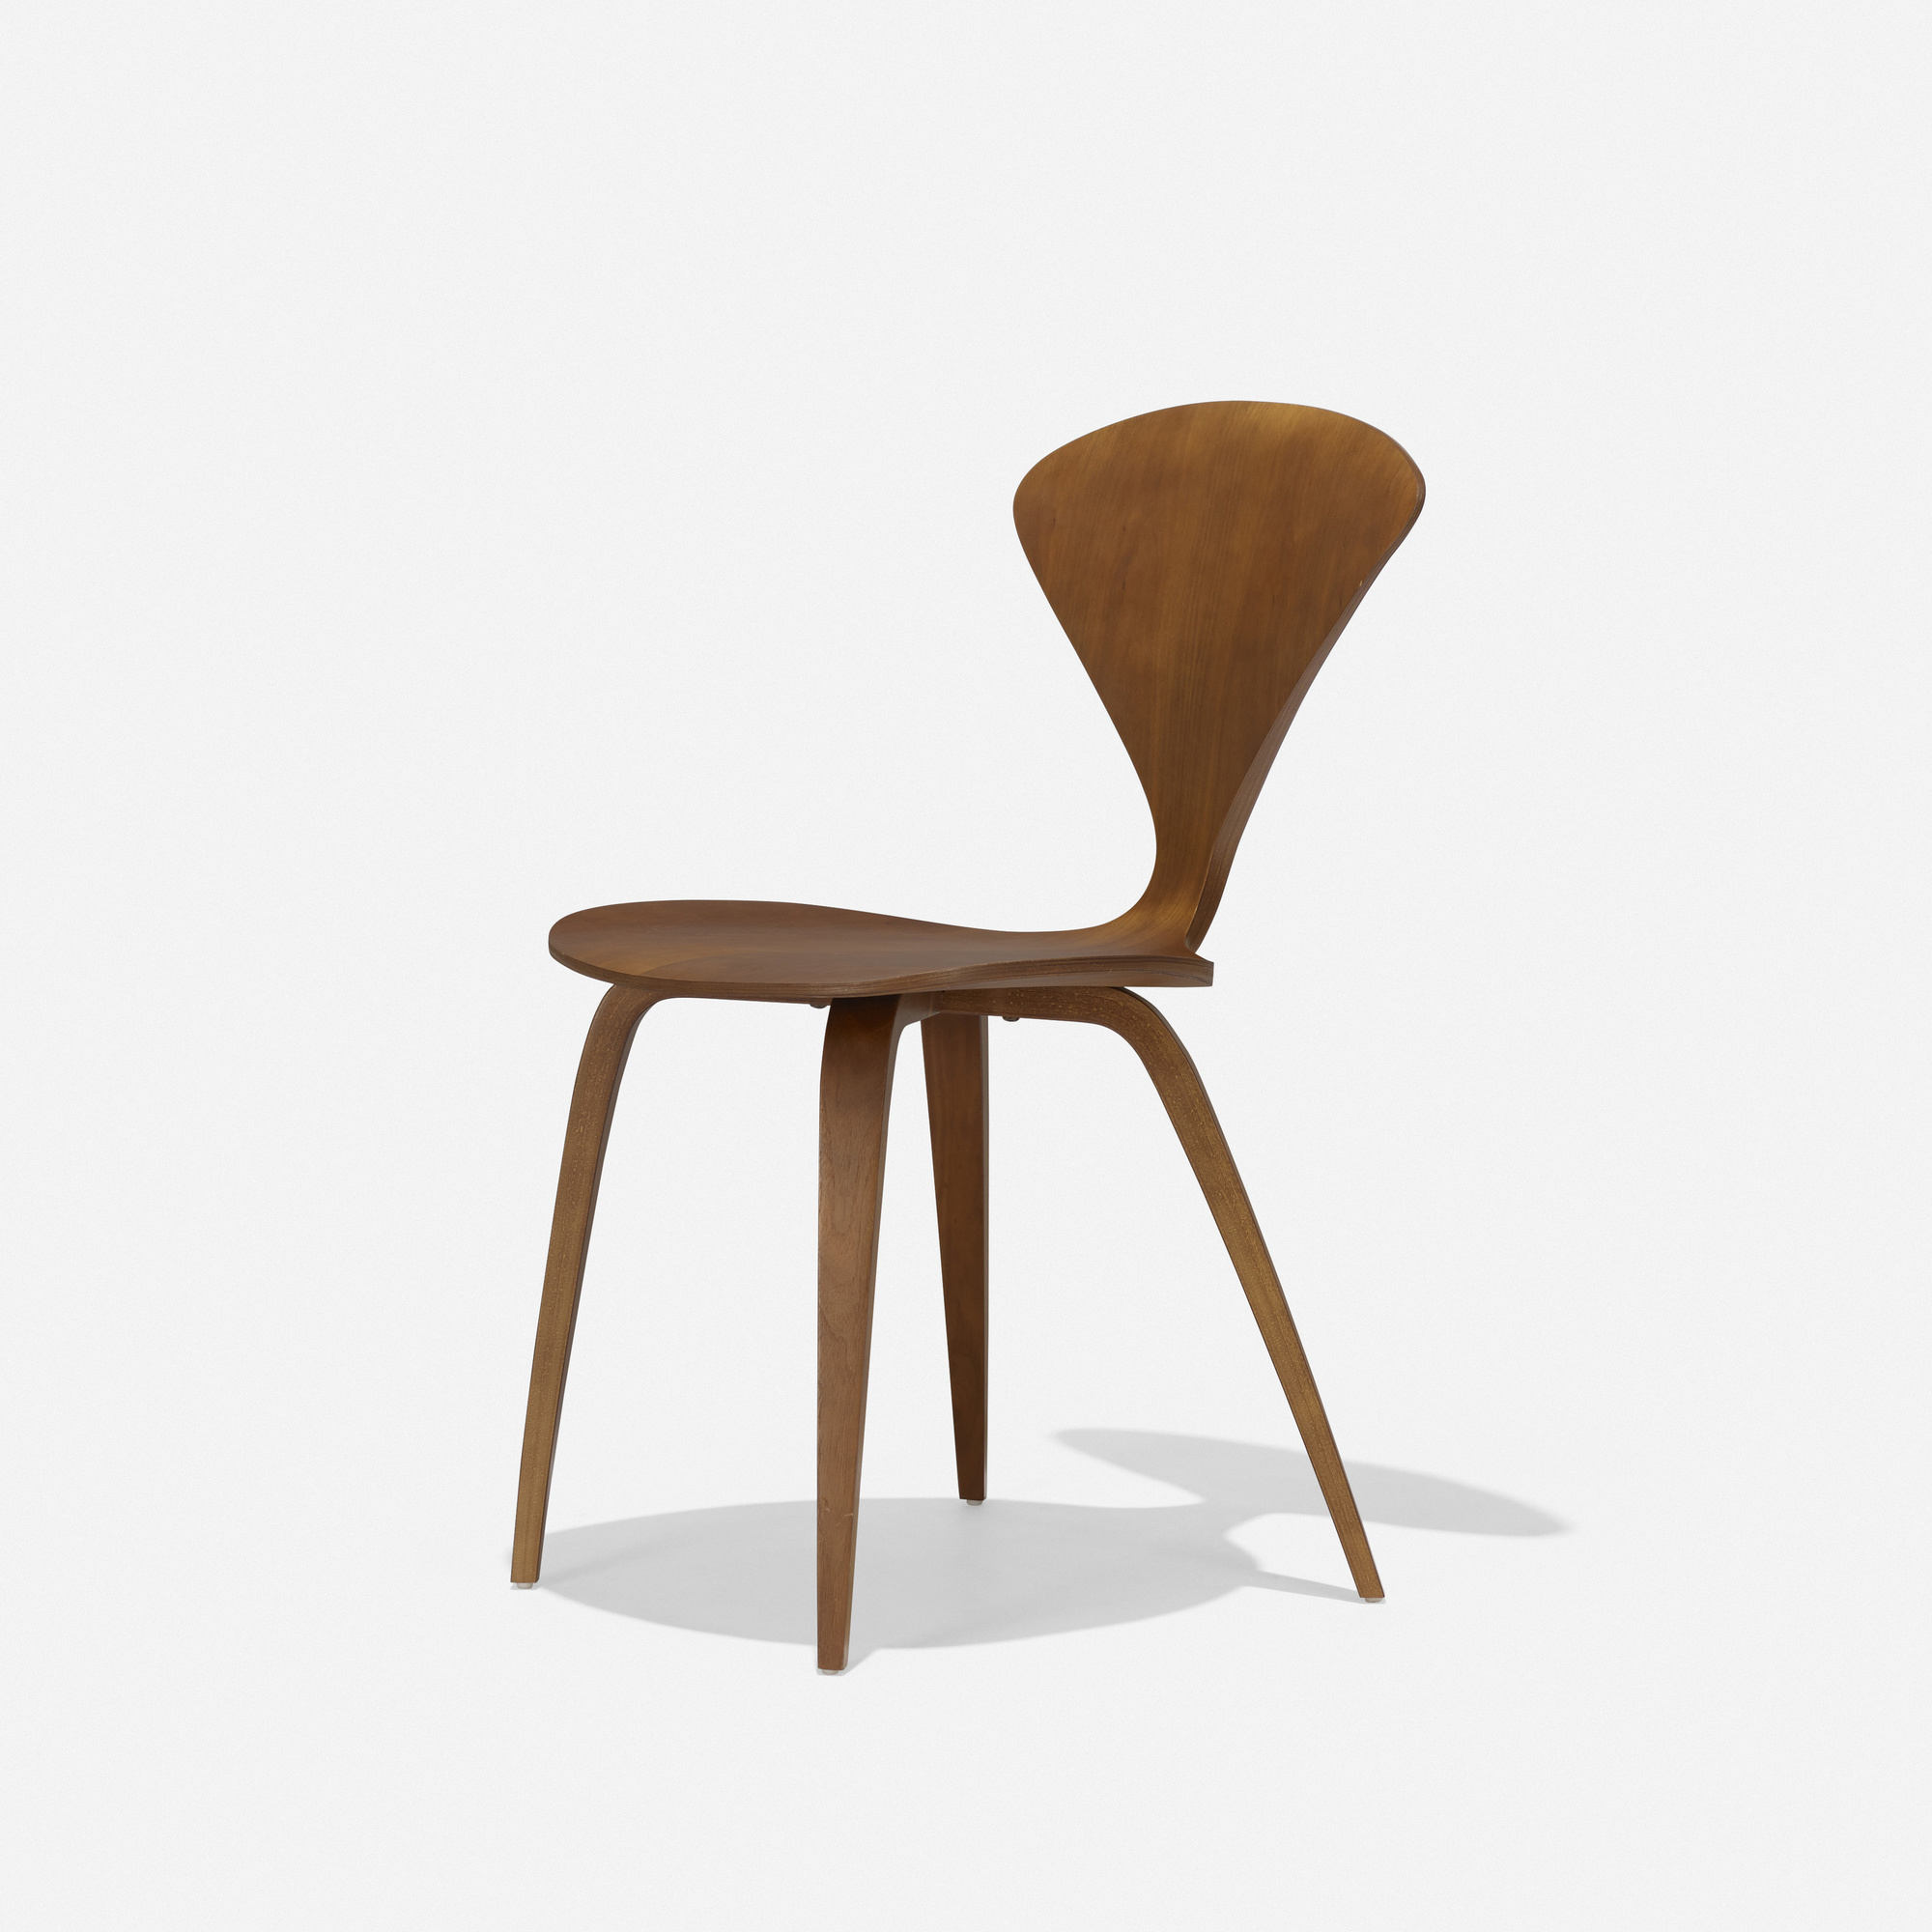 392 Norman Cherner chair Taxonomy of Design Selections from